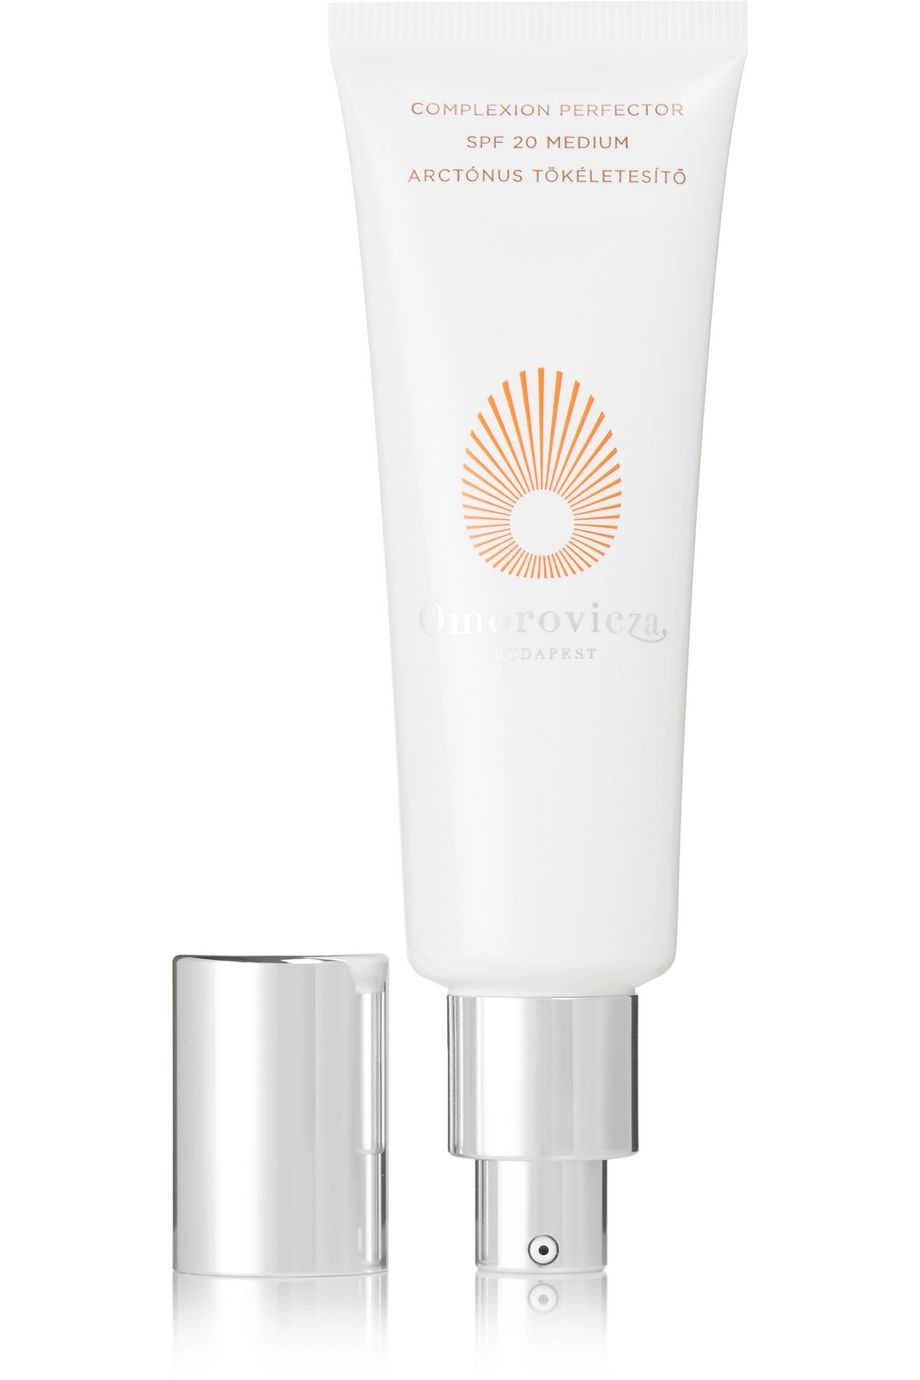 Omorovicza Complexion Perfector SPF20 - Medium, 50ml